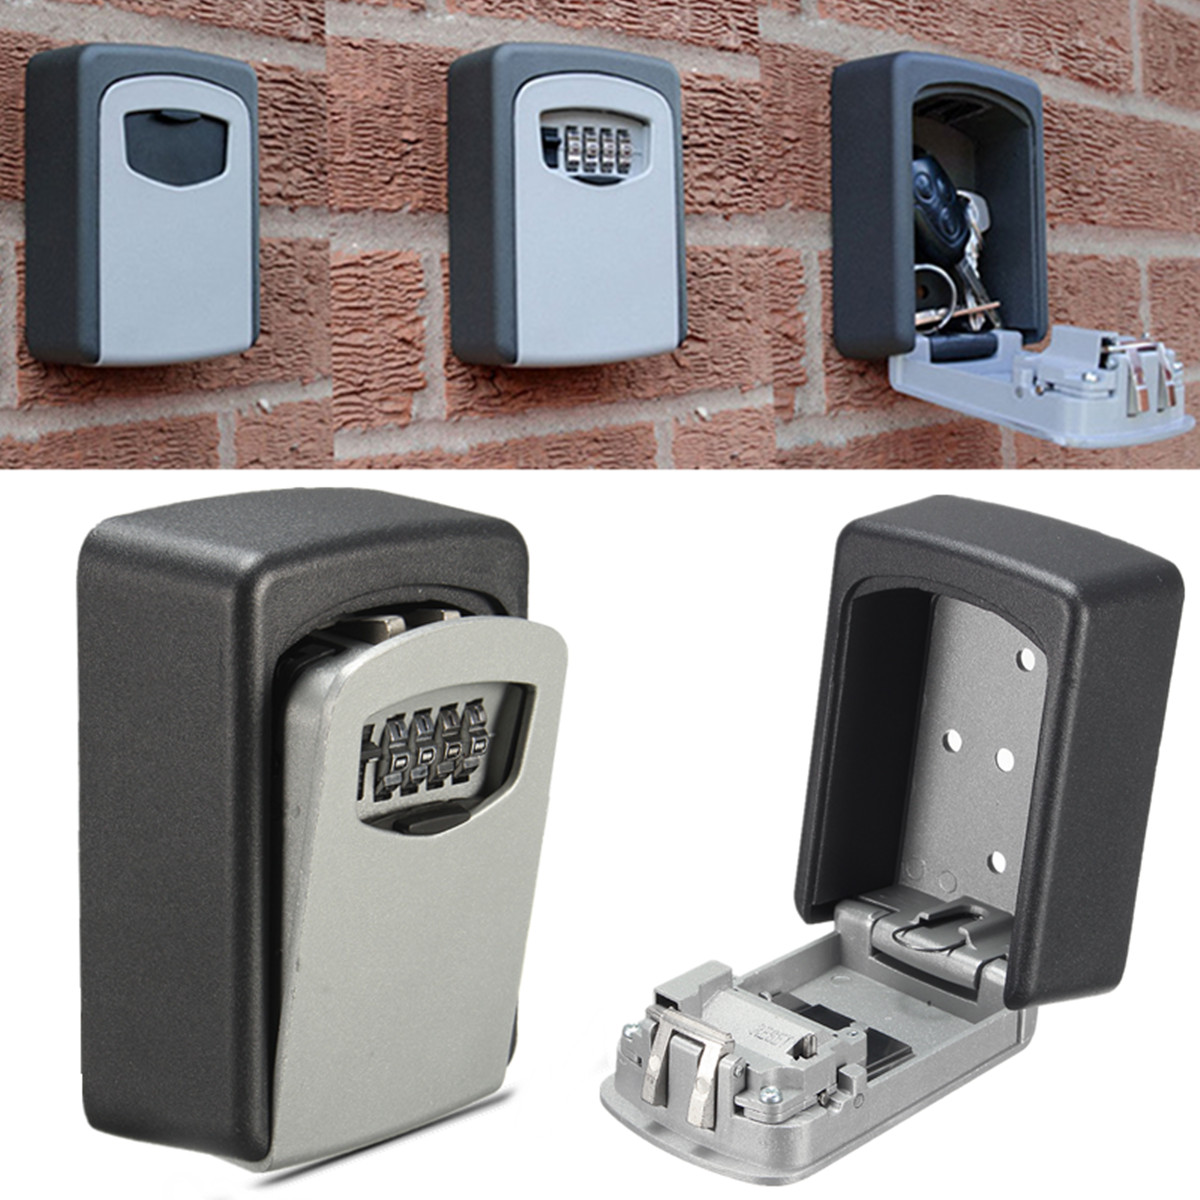 4 Digit Combination Key Safe Security Storage Box Lock Case Cabinet Wall Mount